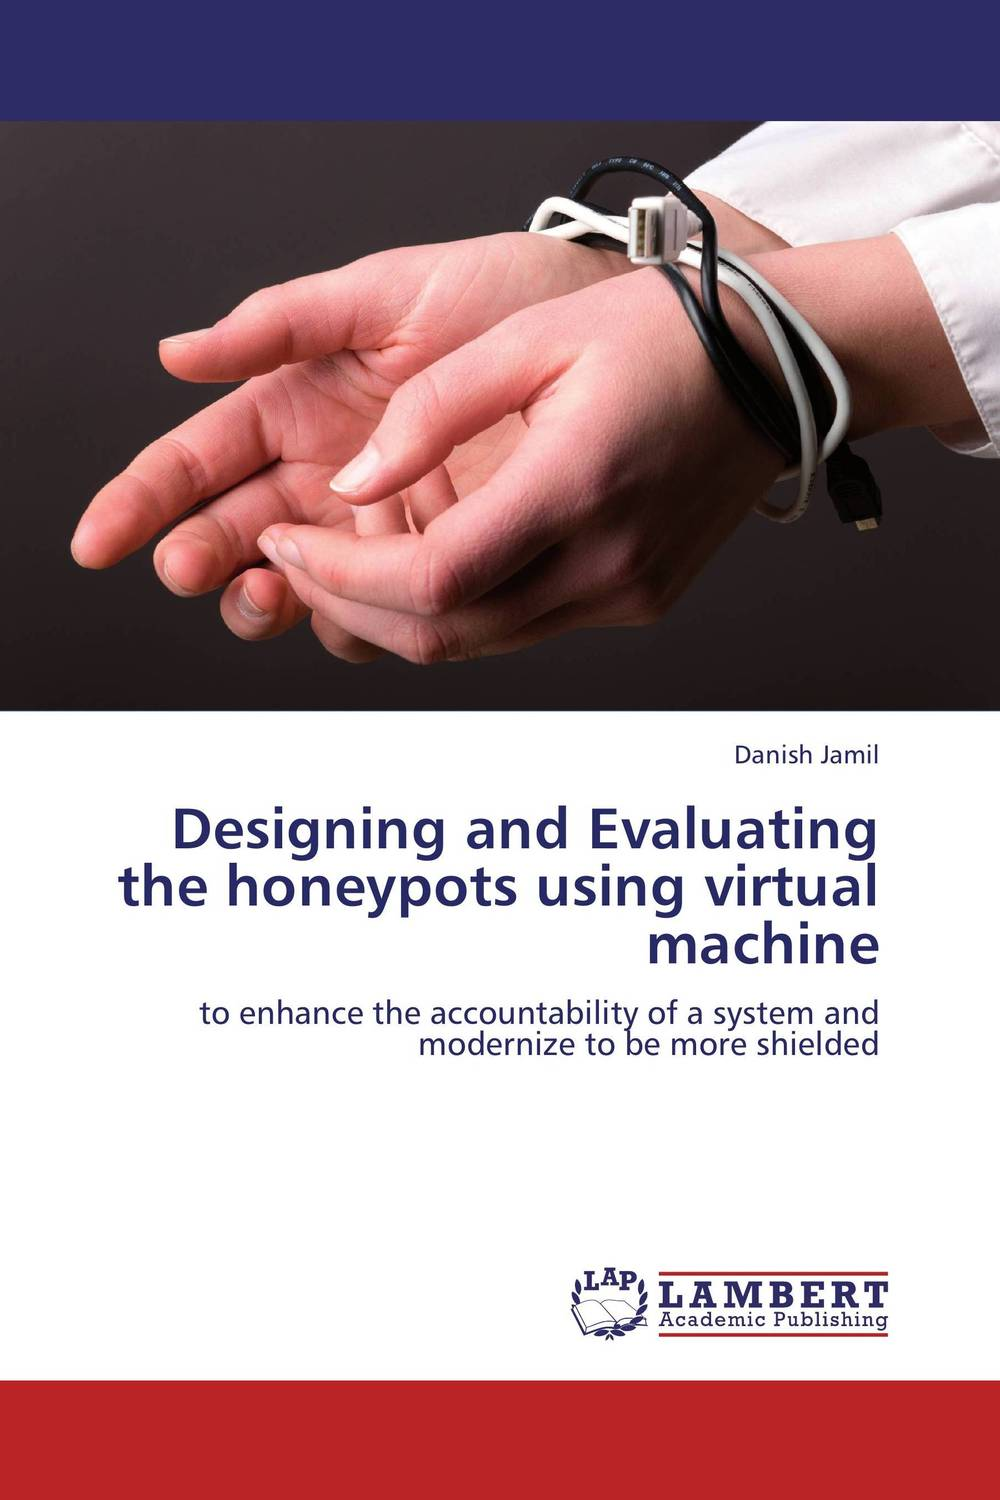 Designing and Evaluating the honeypots using virtual machine belousov a security features of banknotes and other documents methods of authentication manual денежные билеты бланки ценных бумаг и документов